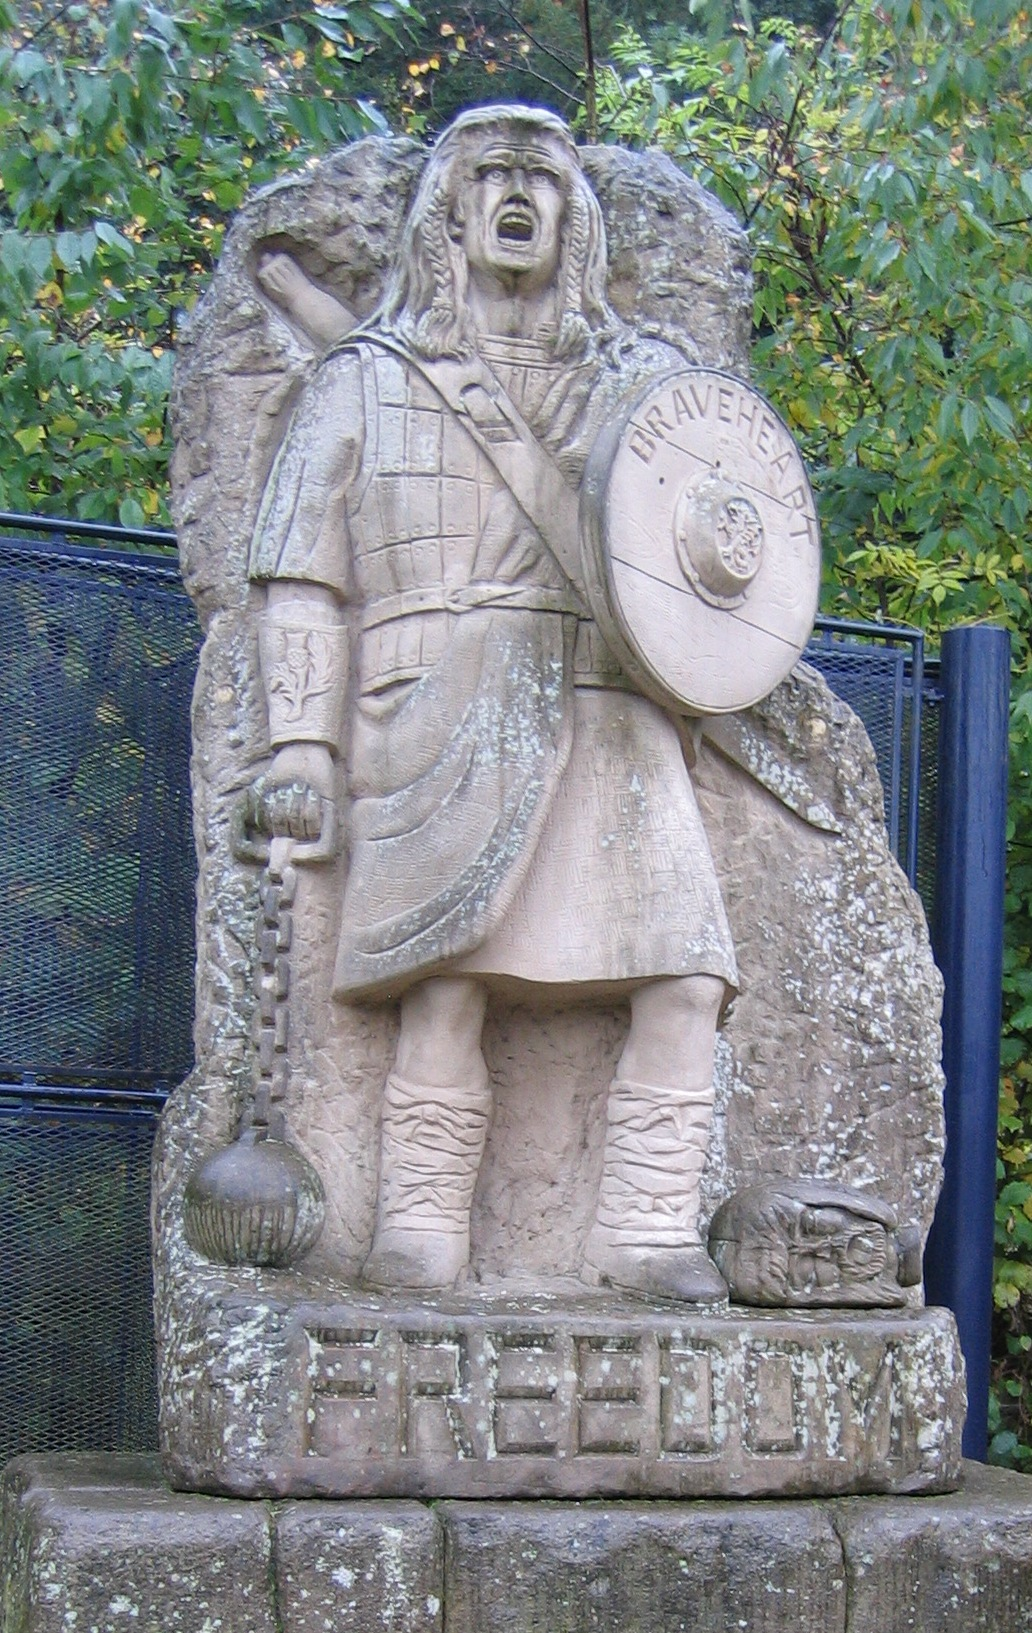 Statue of William Wallace with Mel Gibson's face